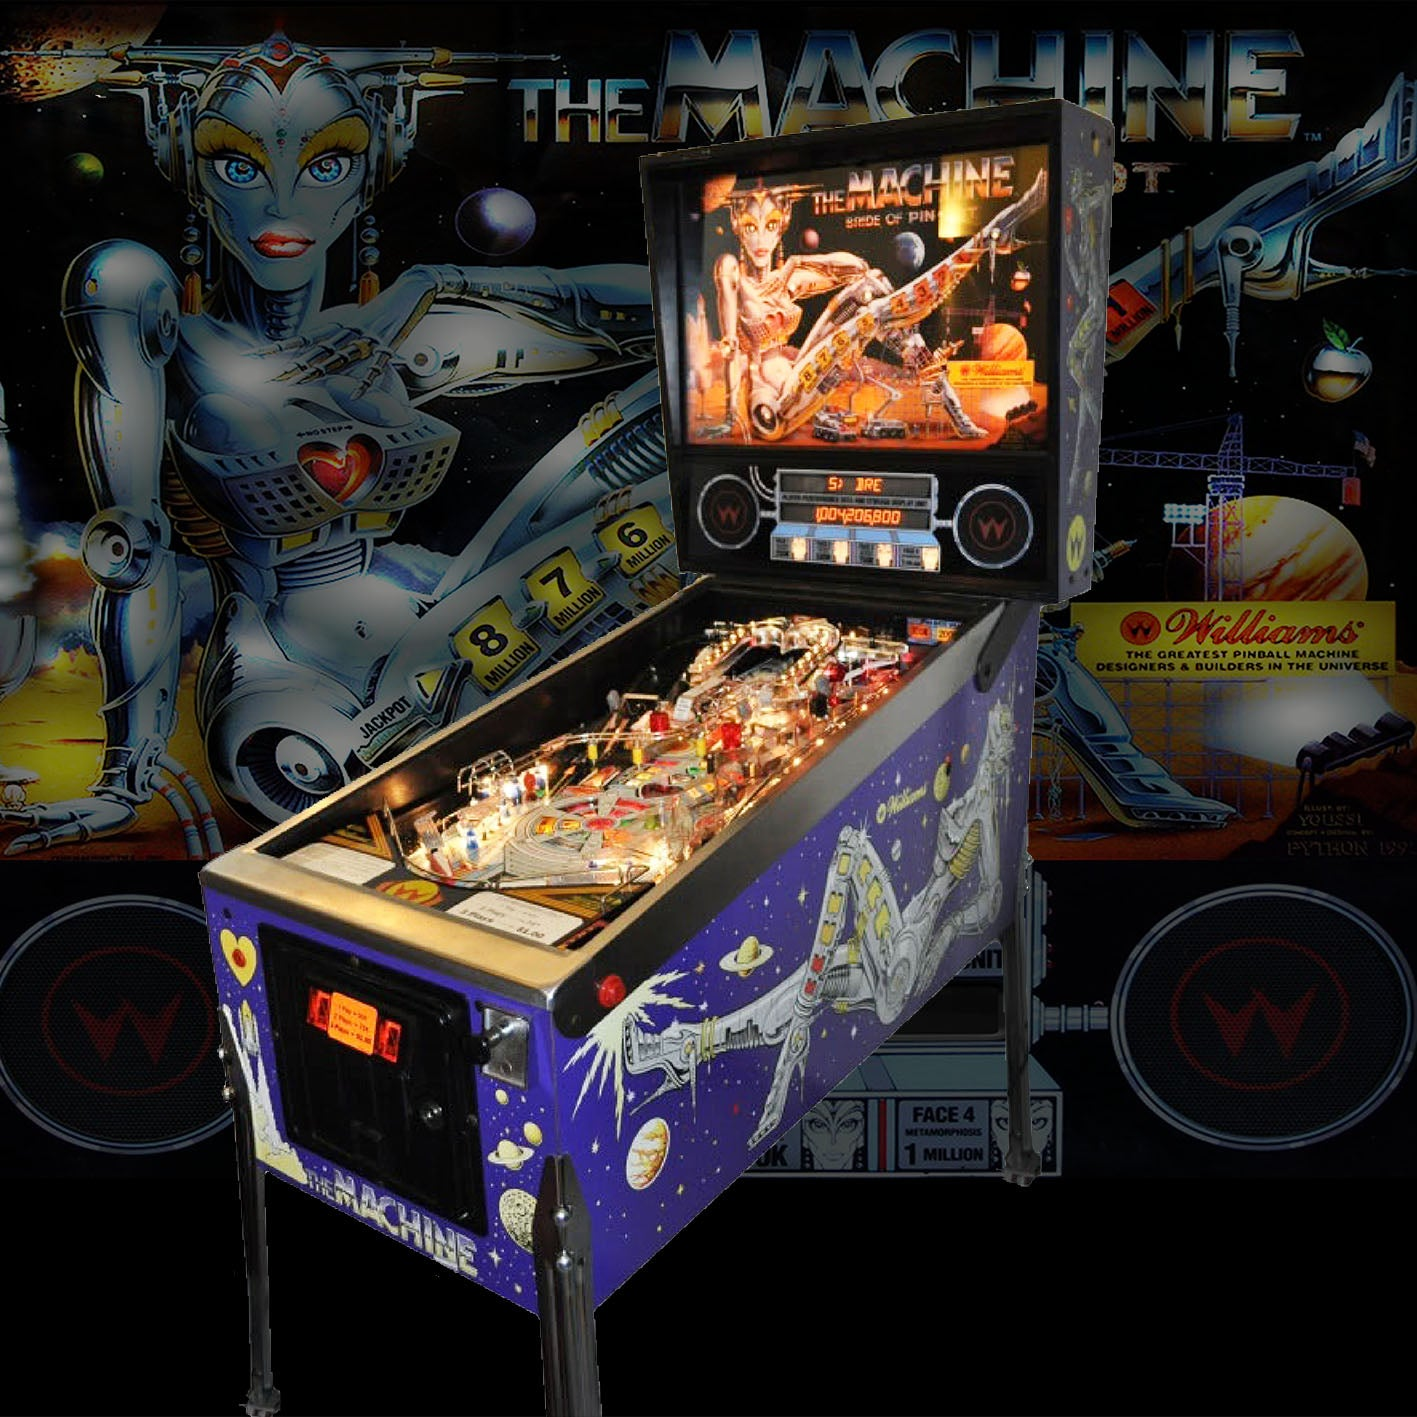 1991 Bride of Pinbot Pinball Machine by Williams 'Coming Soon'